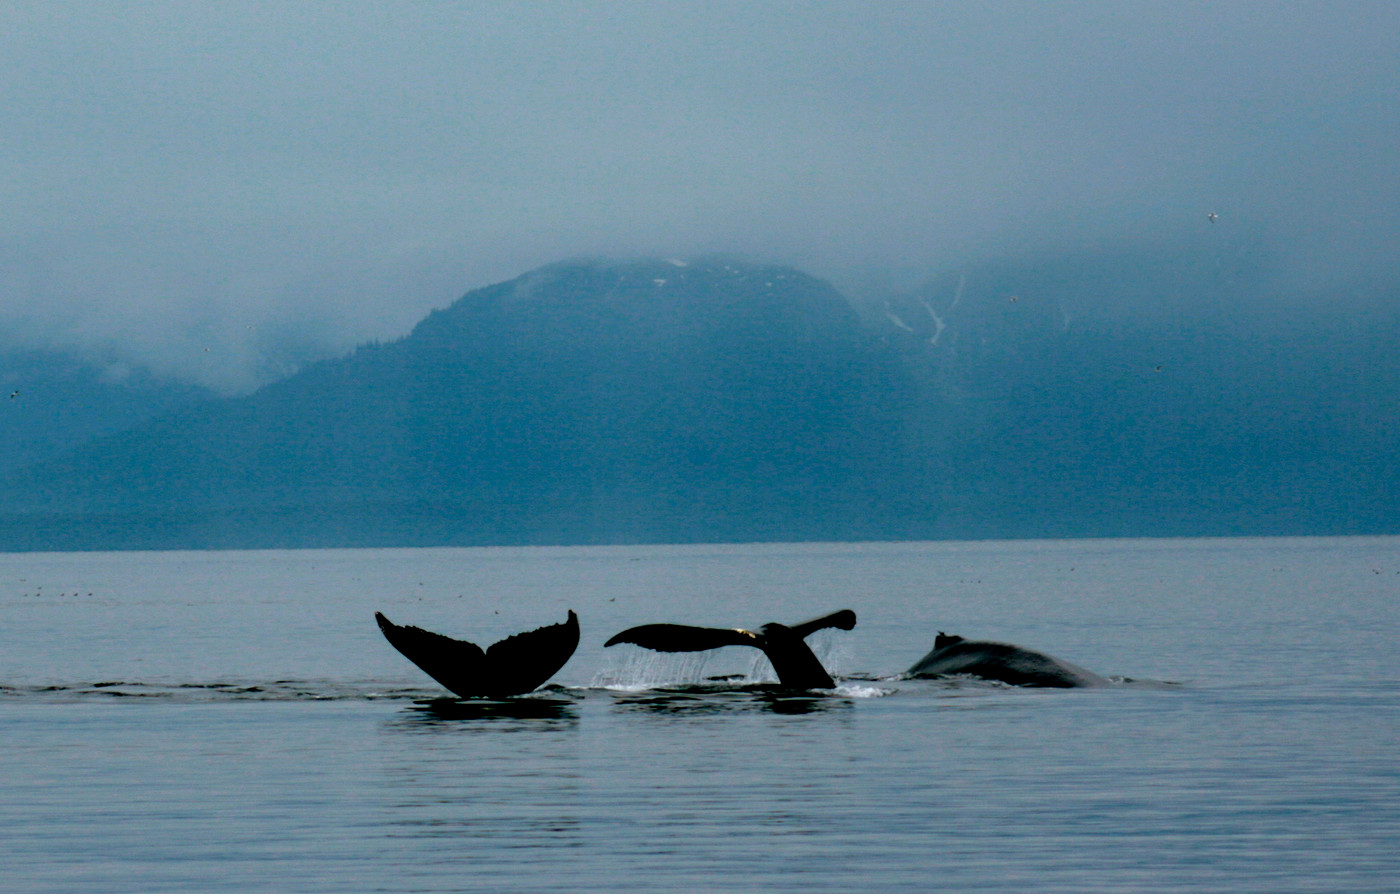 Whales in Icy Strait